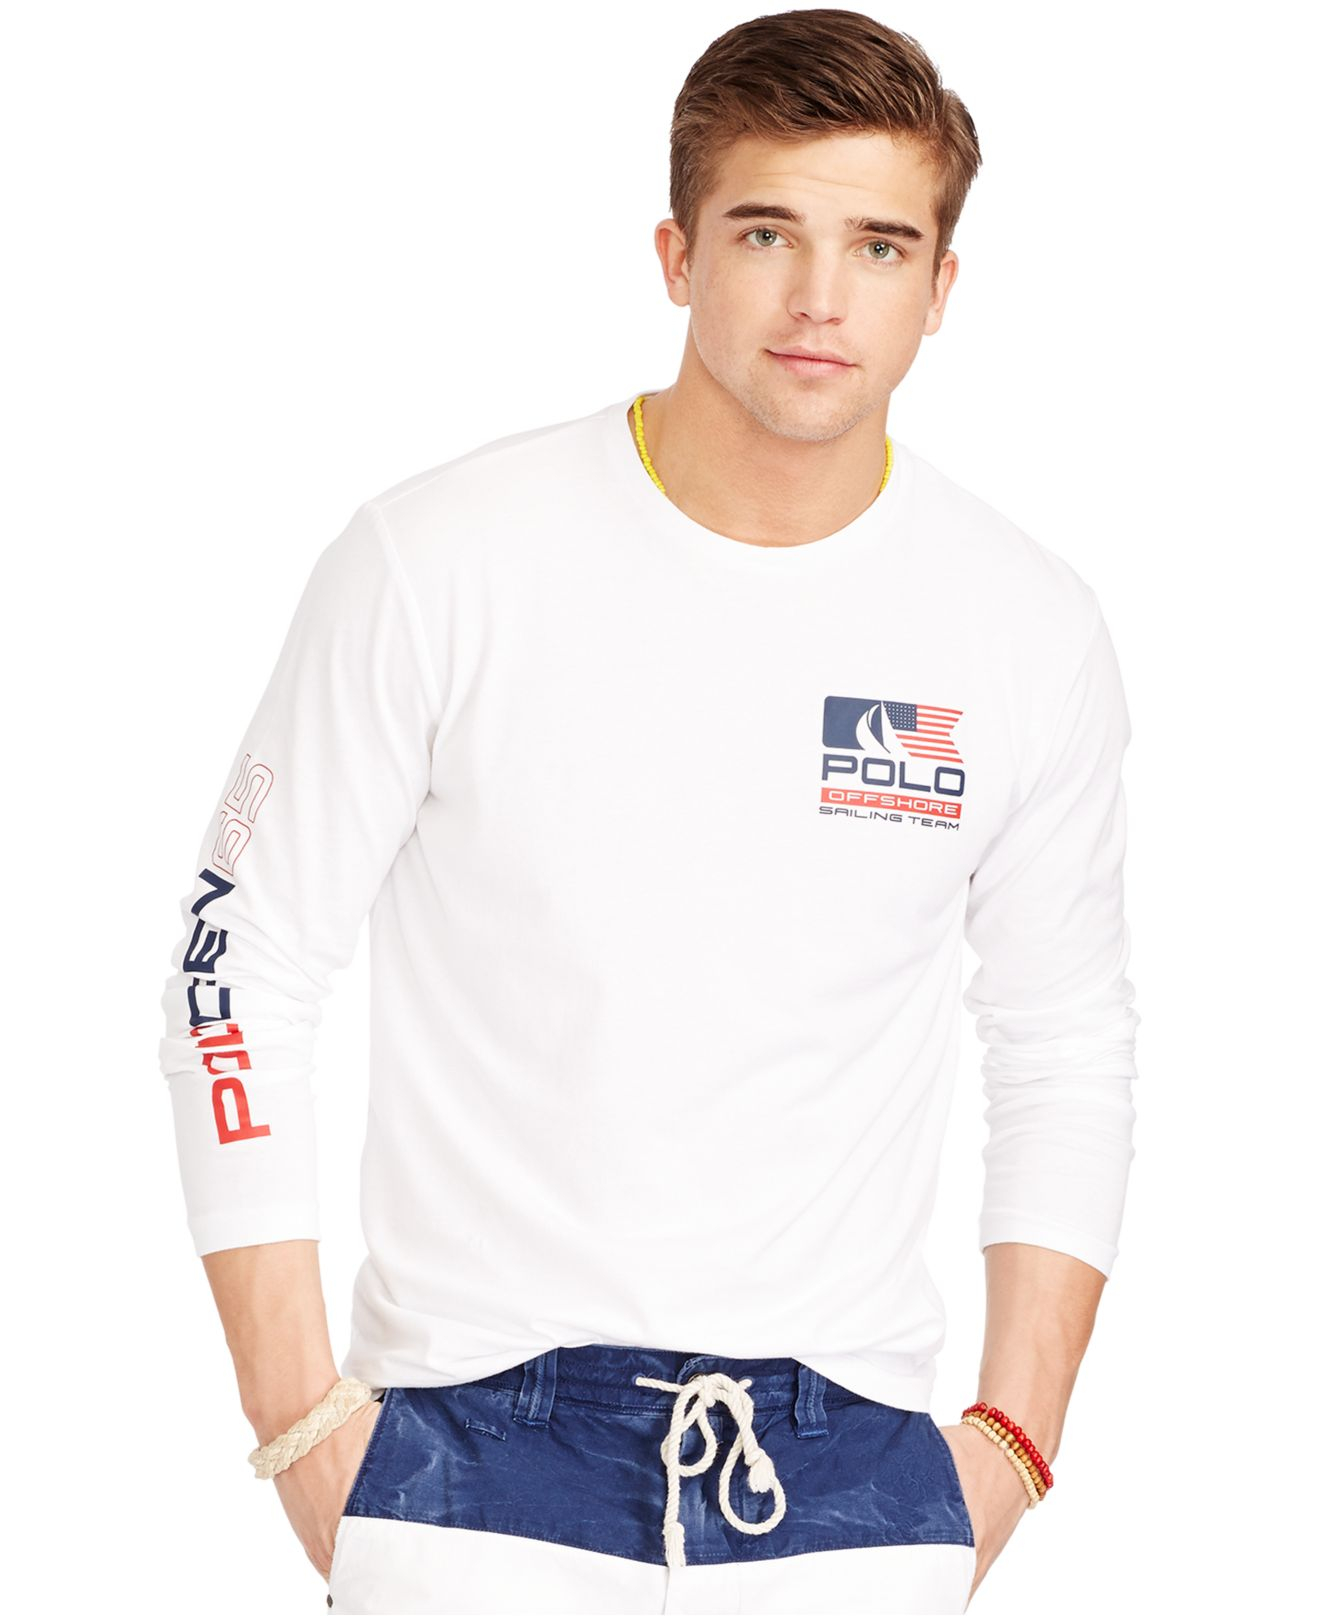 6406ba9e4 Polo Ralph Lauren Long-sleeved Flag Graphic T-shirt in White for Men ...